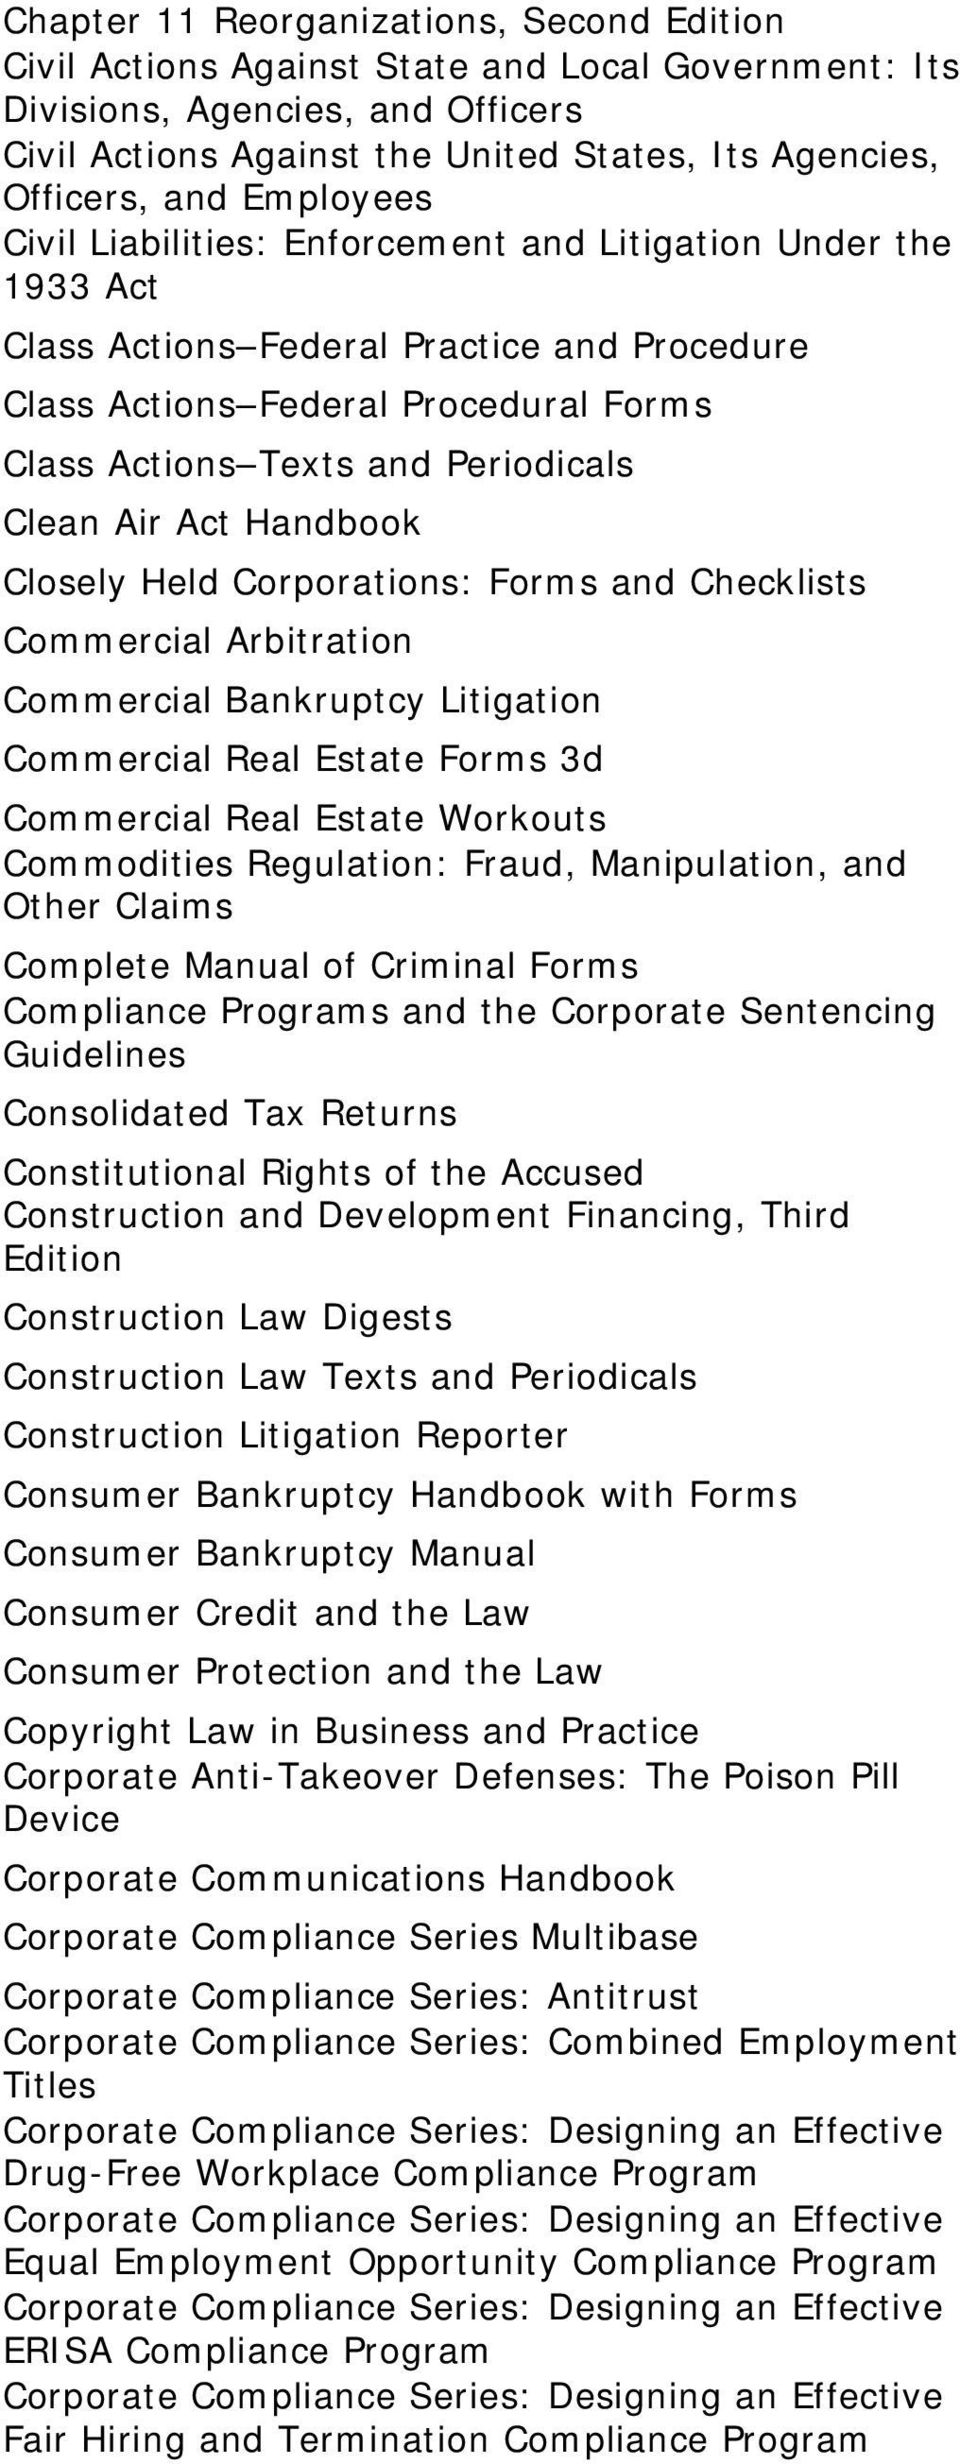 Clean Air Act Handbook Closely Held Corporations: Forms and Checklists Commercial Arbitration Commercial Bankruptcy Litigation Commercial Real Estate Forms 3d Commercial Real Estate Workouts